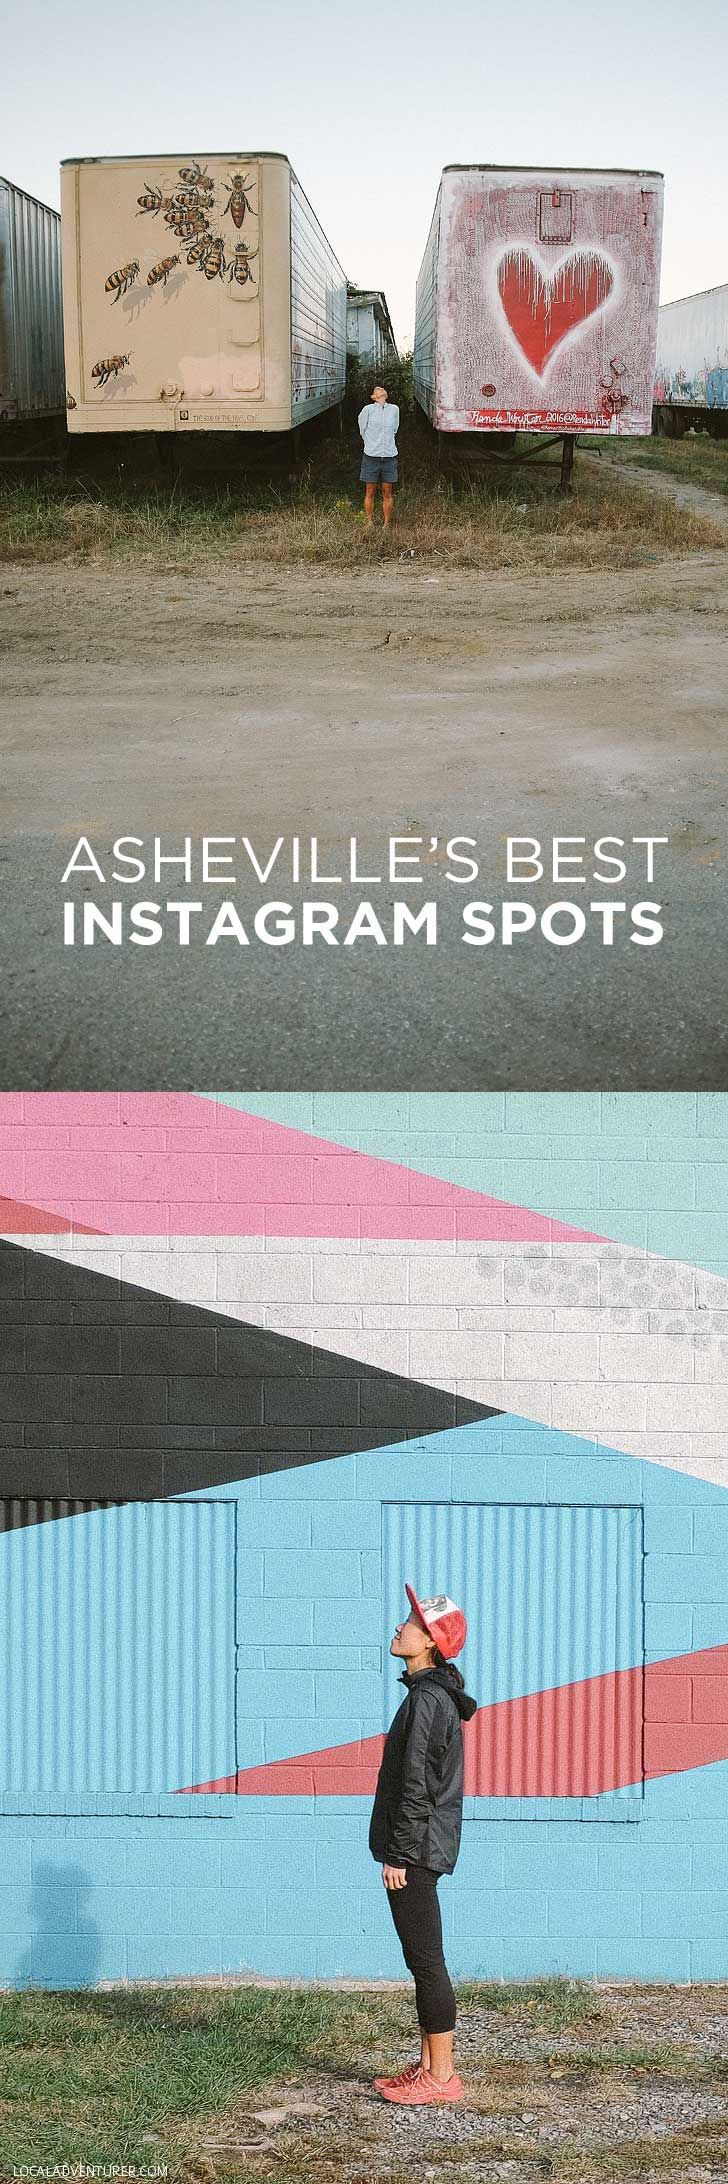 25 Best Instagram Spots in Asheville NC - #14 is my fave! // localadventurer.com